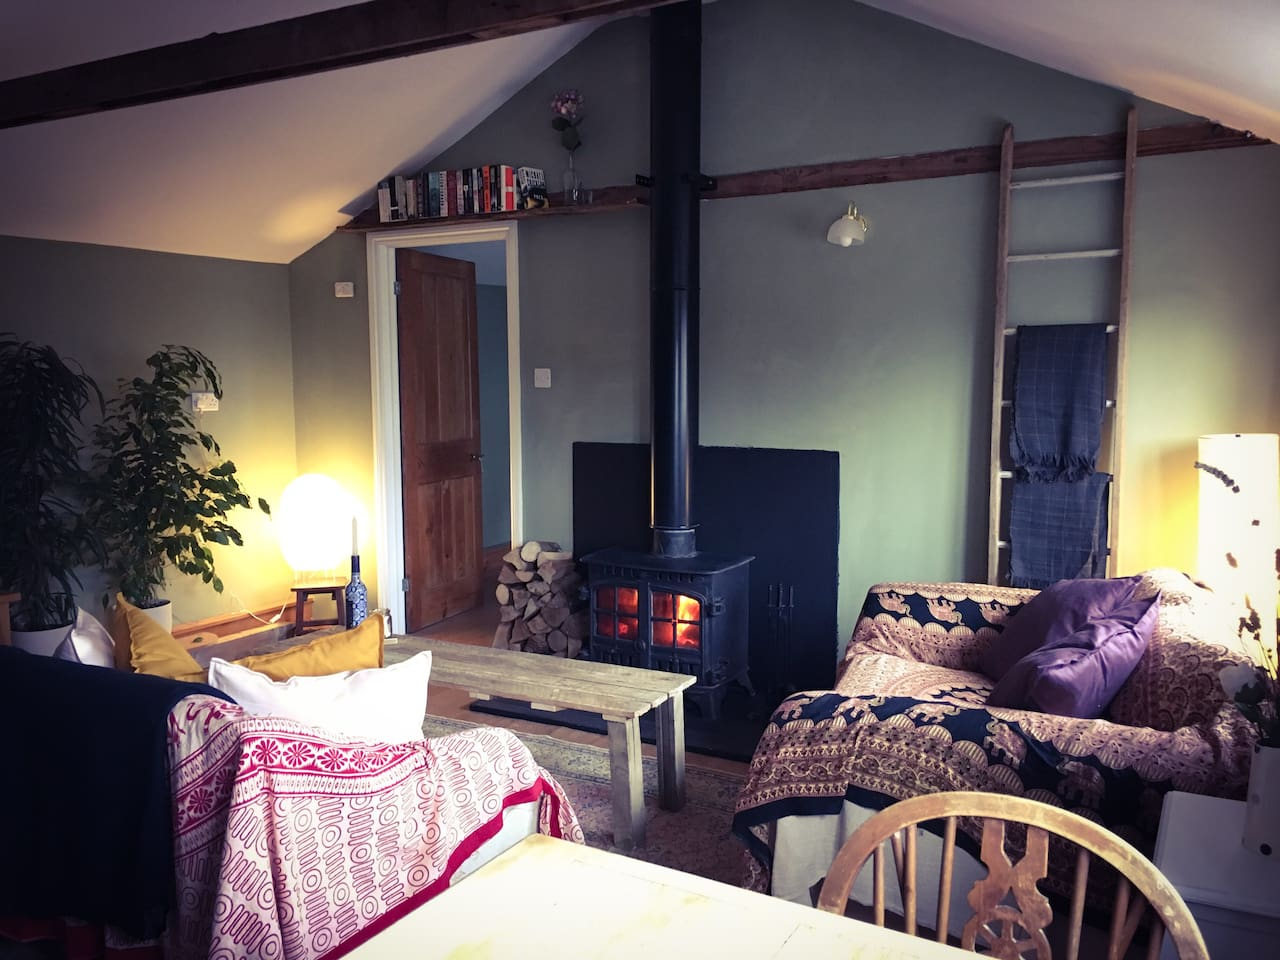 Living room with a very warm wood stove.